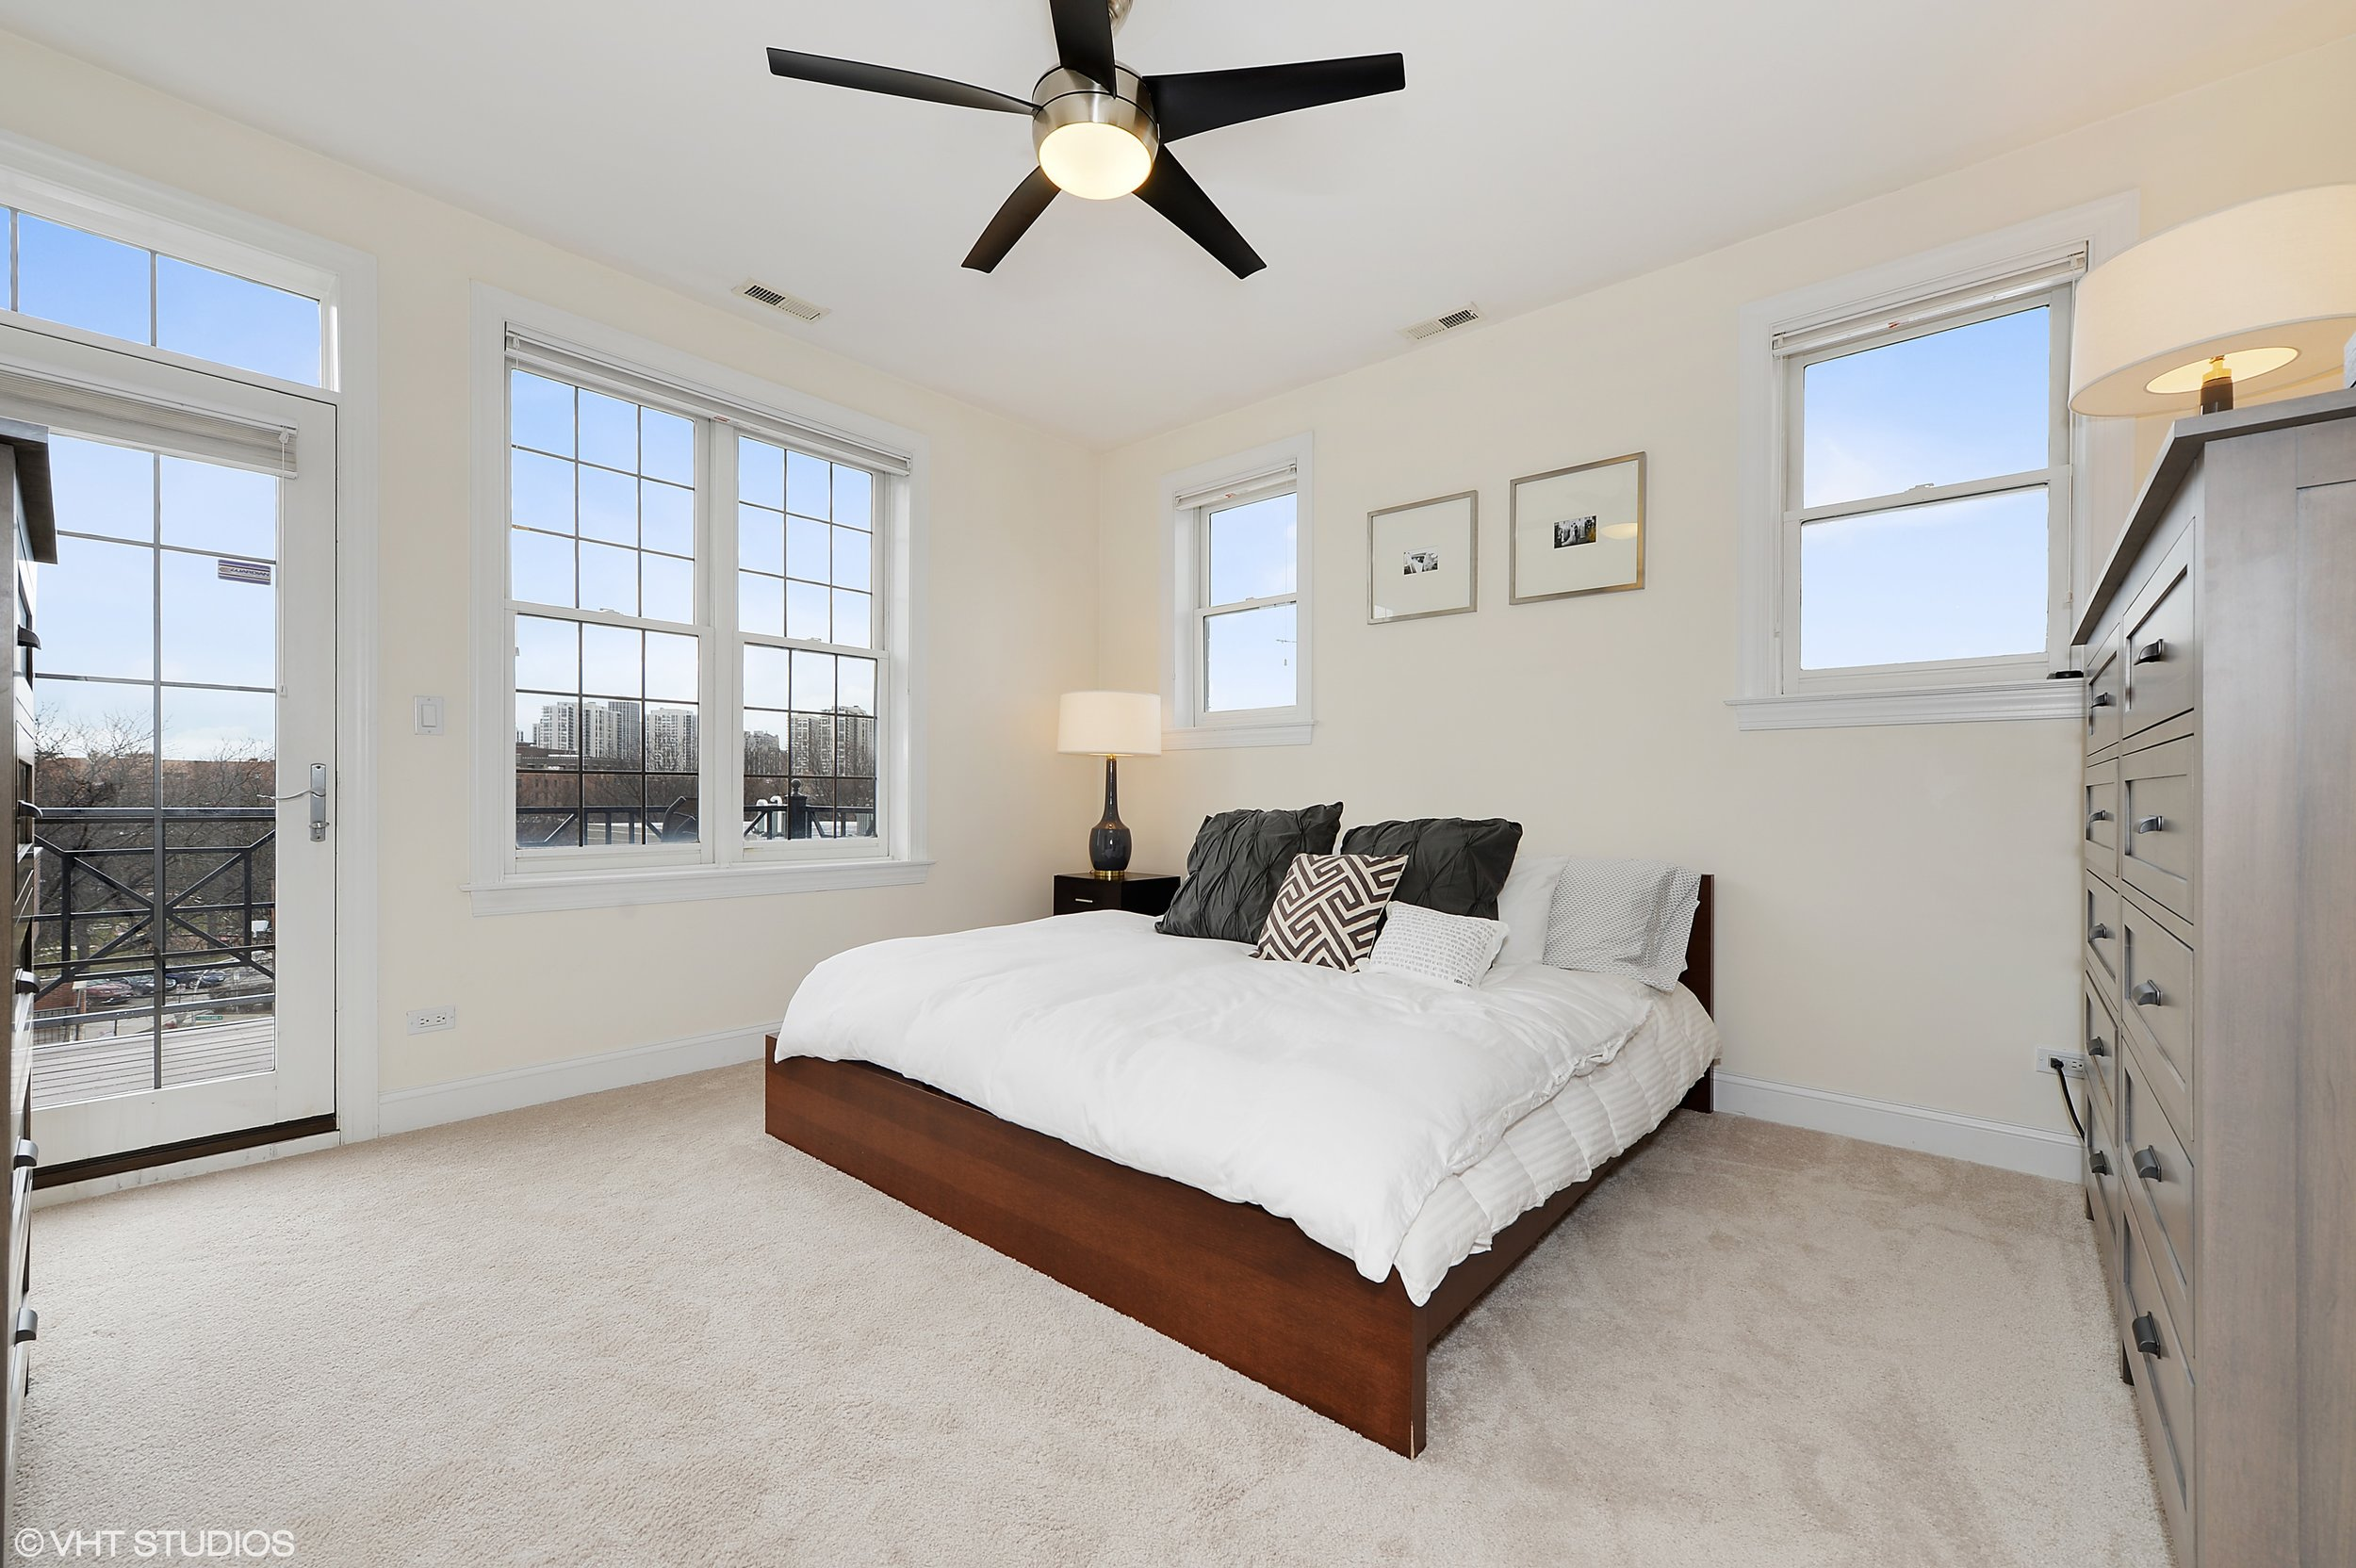 06_1275NorthClybournAve_4_14_MasterBedroom_HiRes.jpg